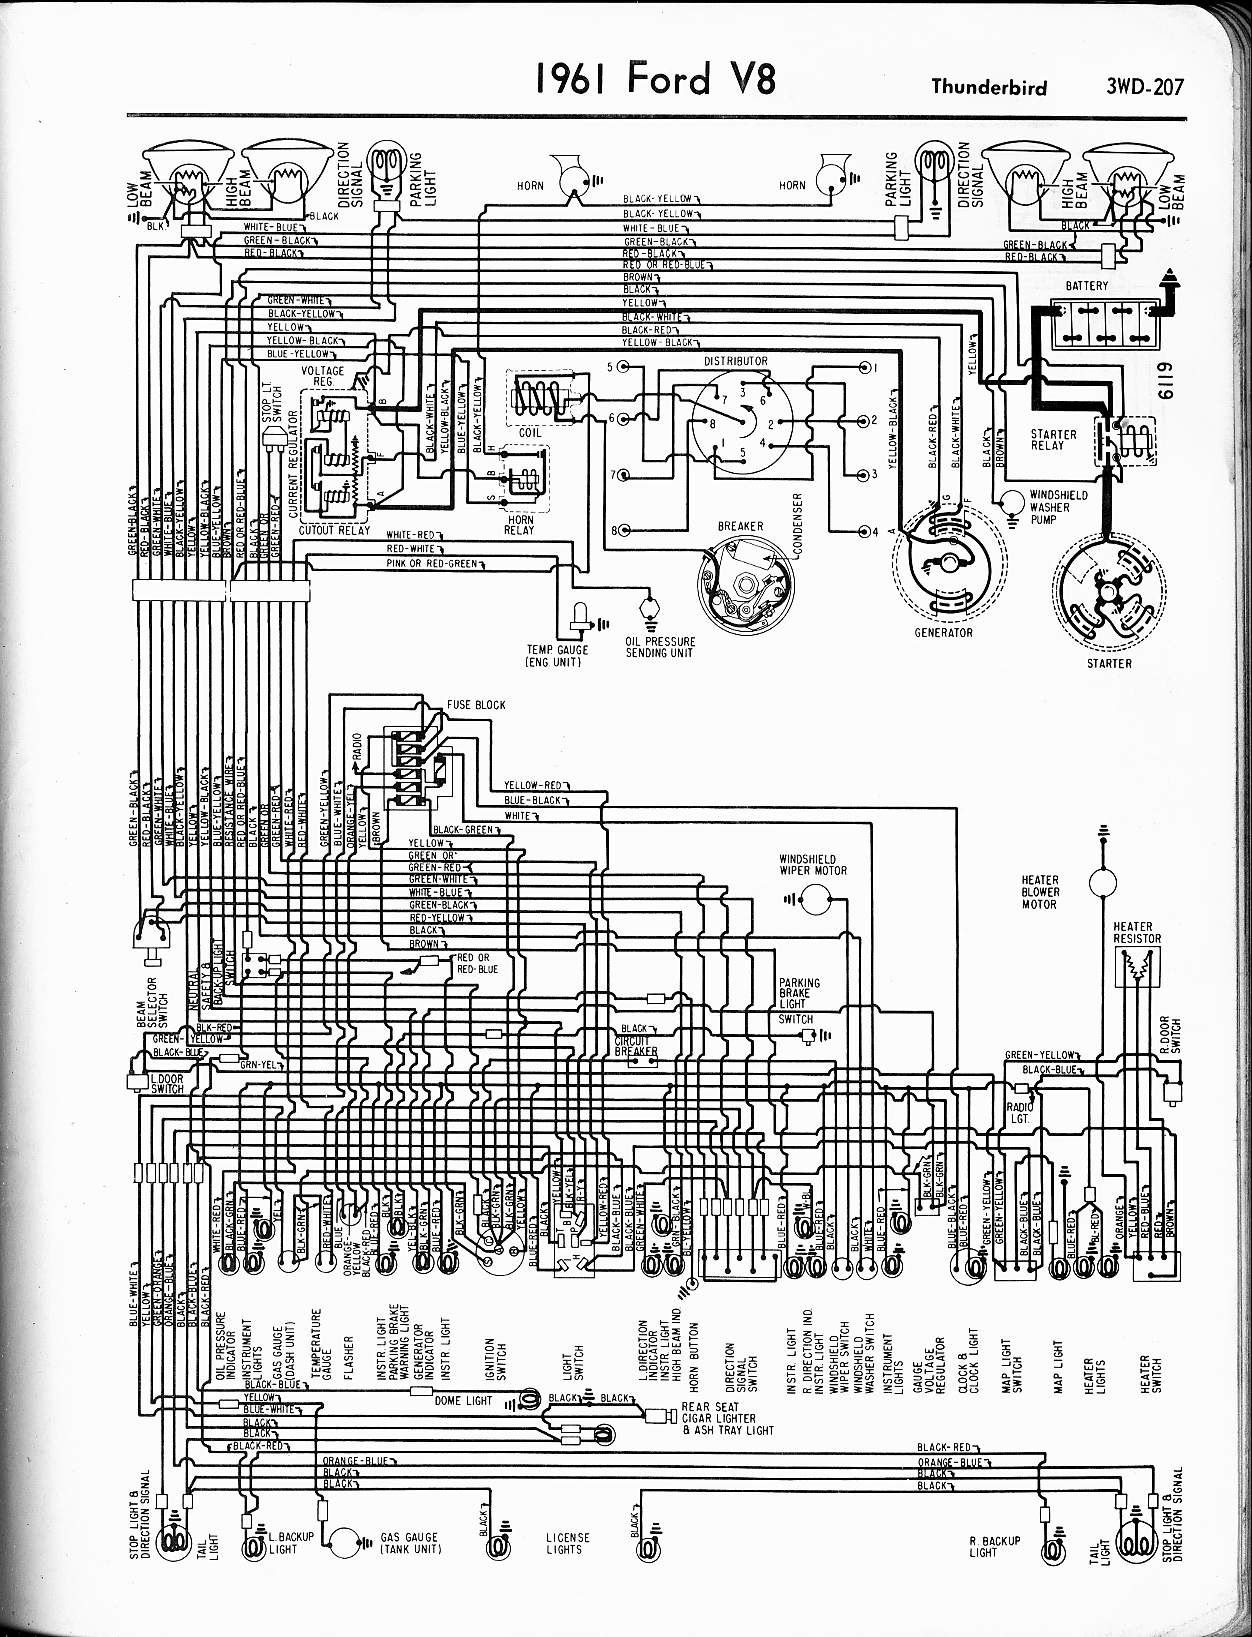 1966 ford pick up heater wiring diagram simple wiring diagram rh david  huggett co uk 1966